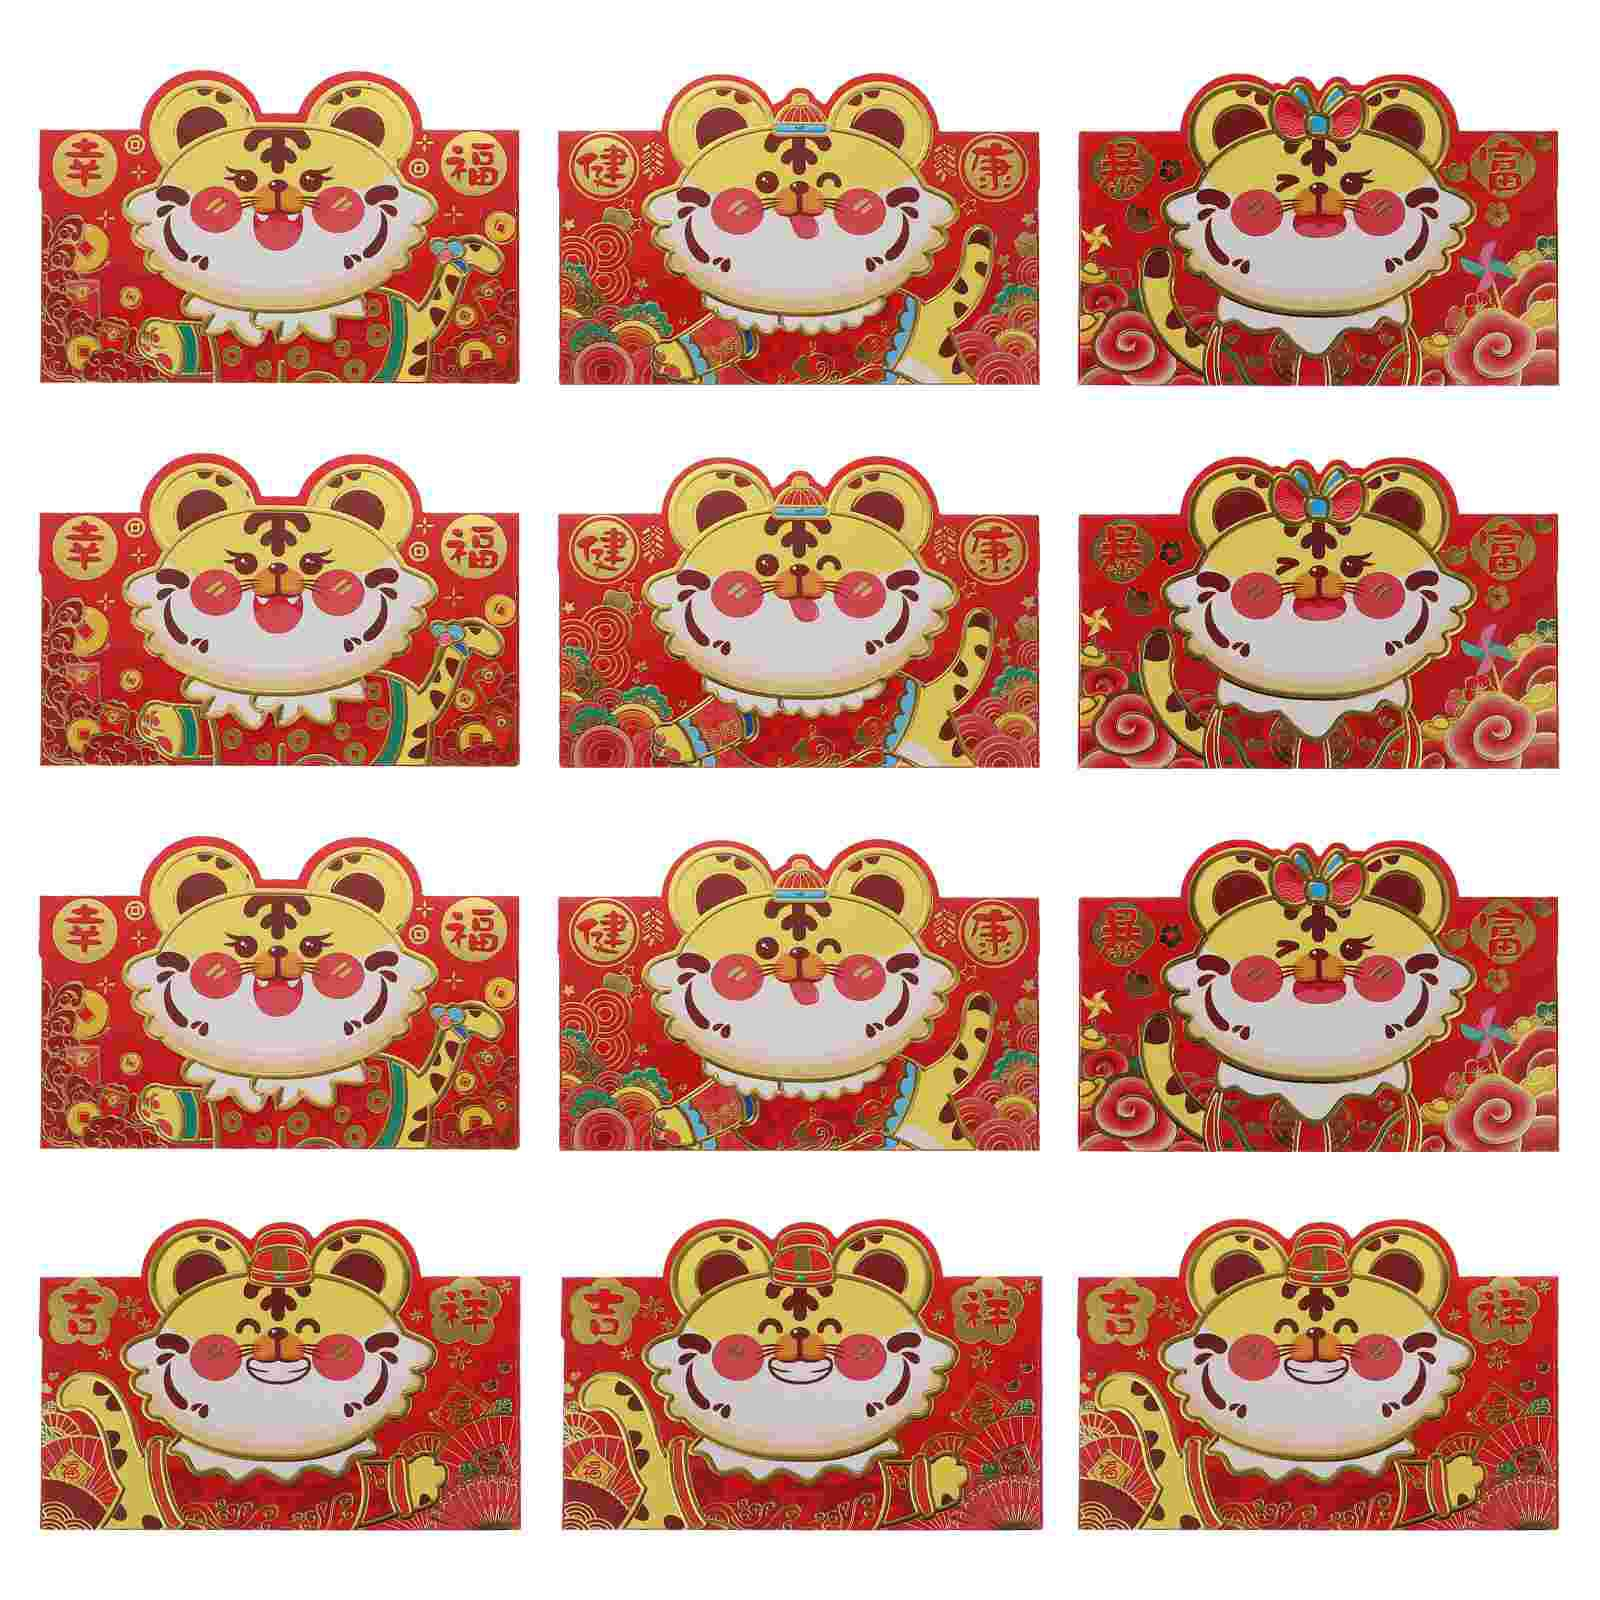 12Pcs Year of The Tiger 2022 Cartoon Three-dimensional Red Envelope for Festival